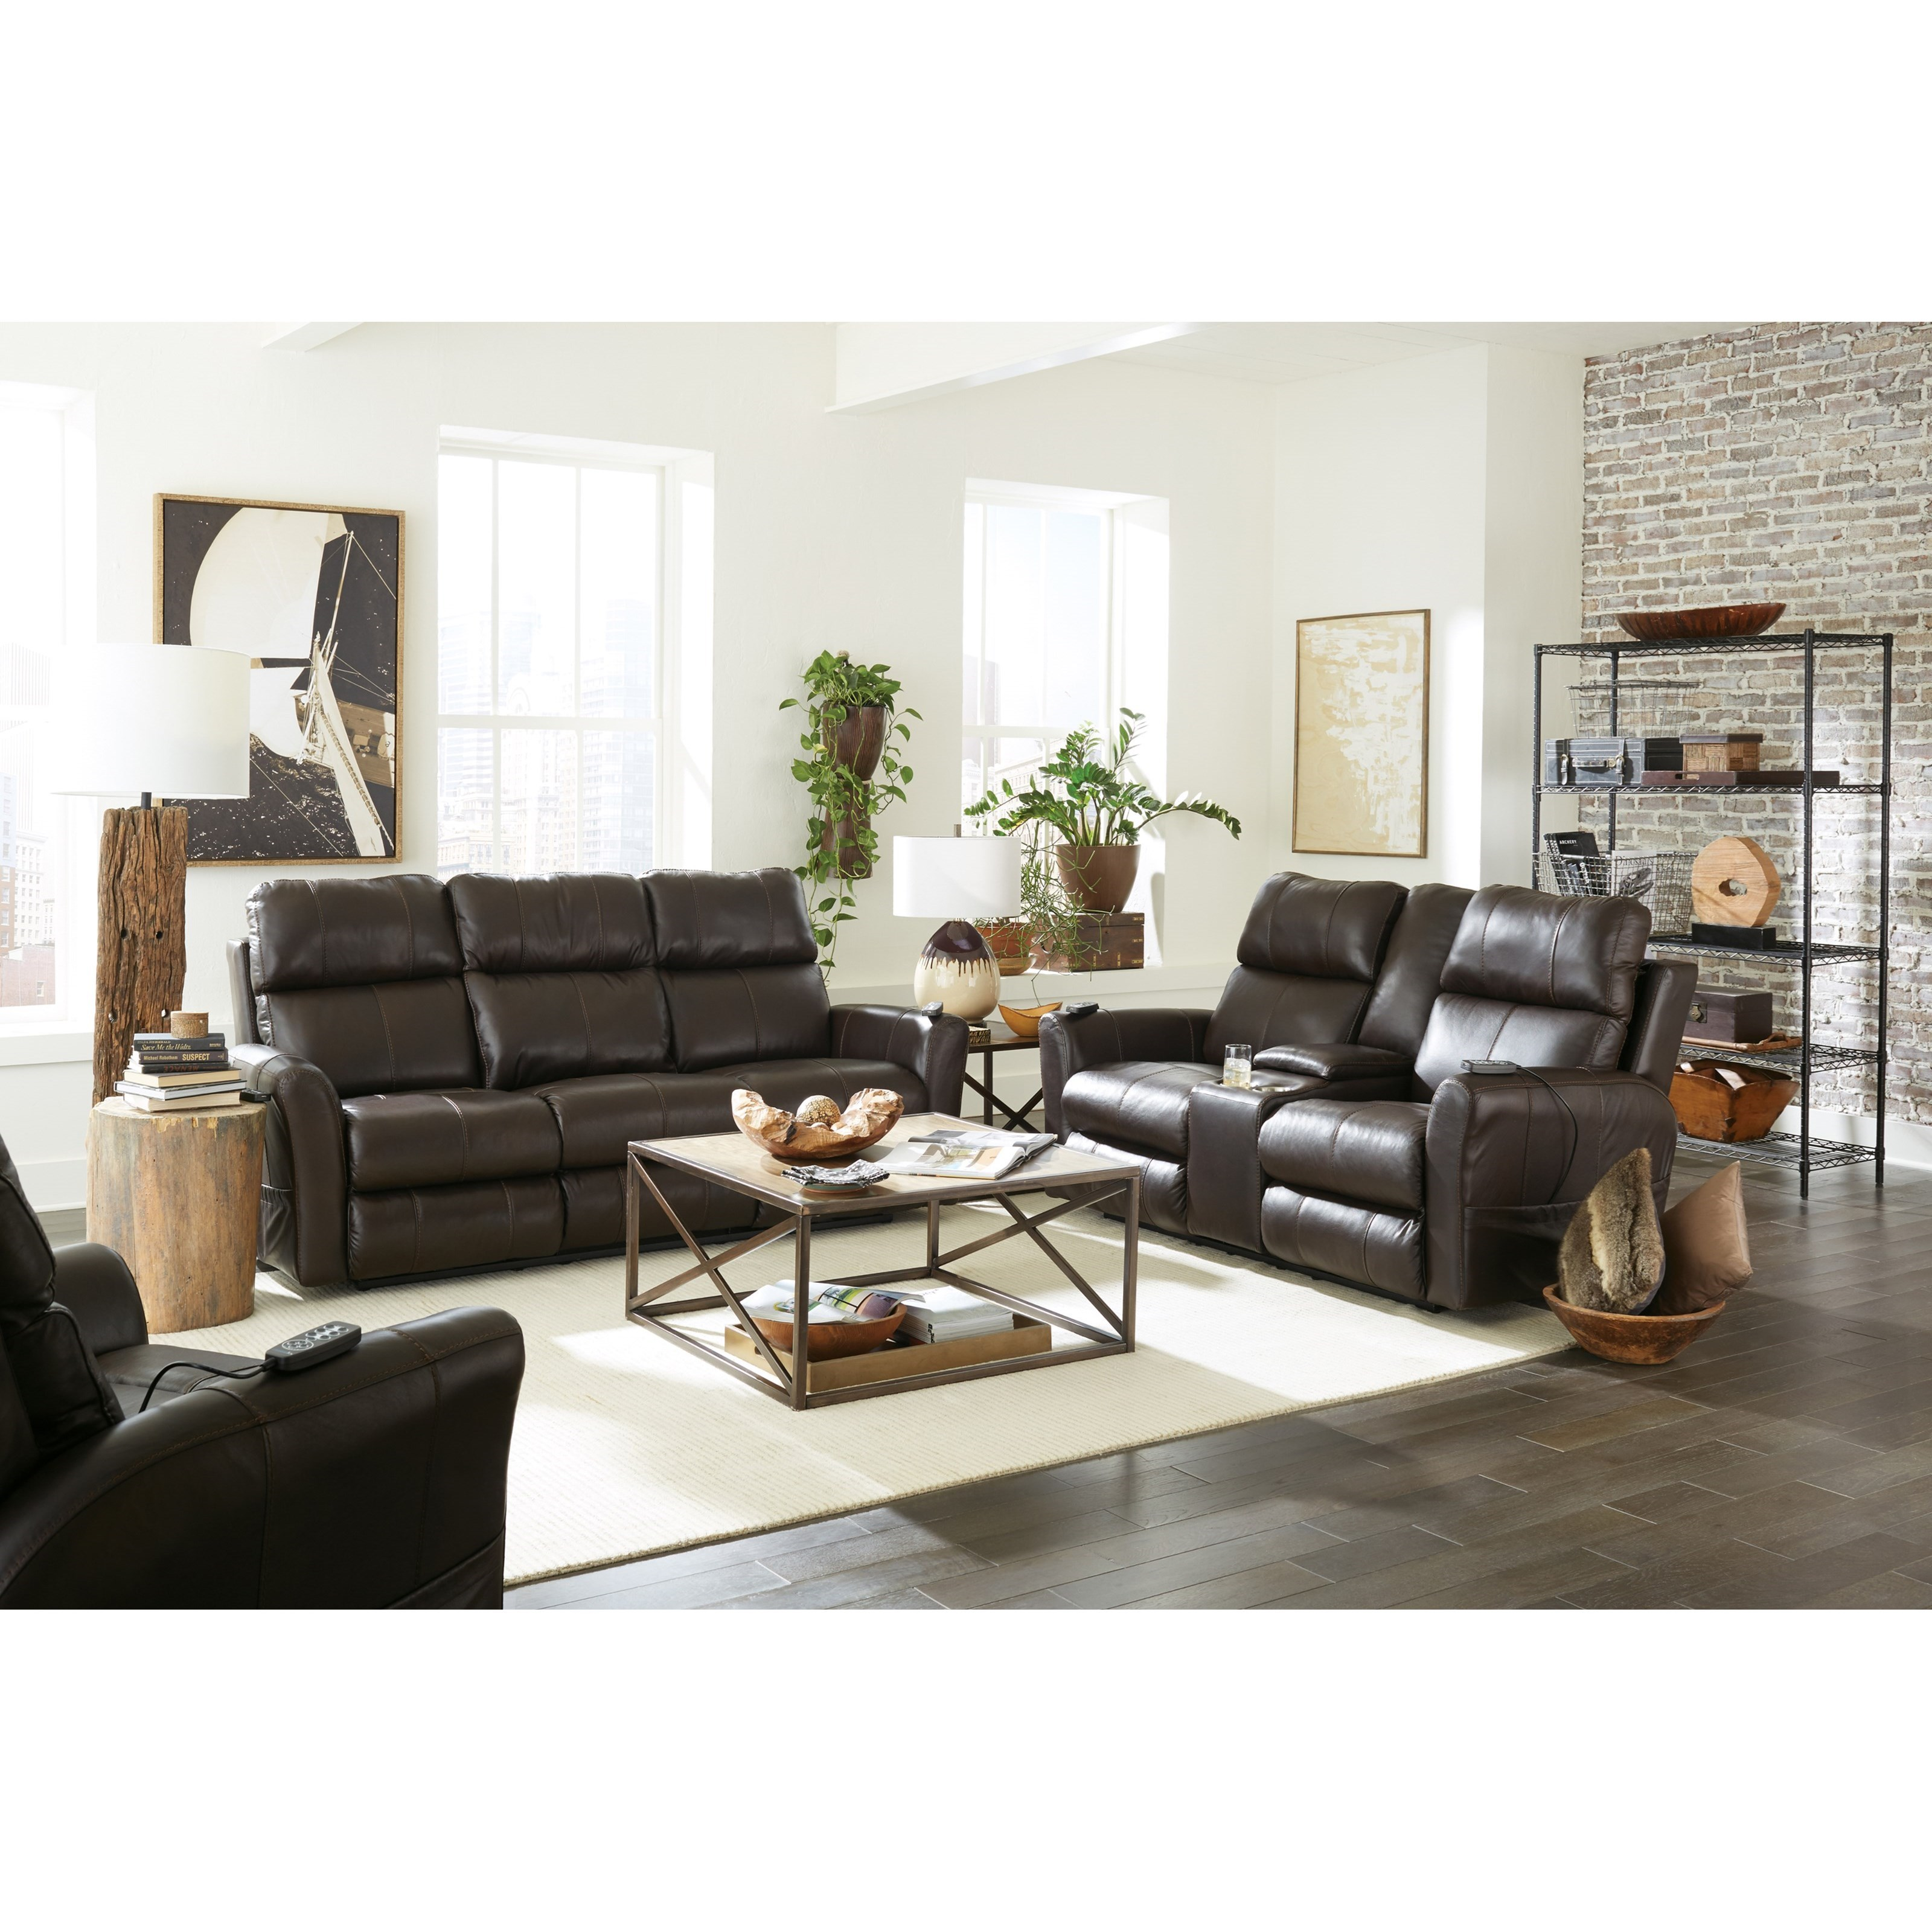 Riposo Power Reclining Living Room Group by Catnapper at Northeast Factory Direct